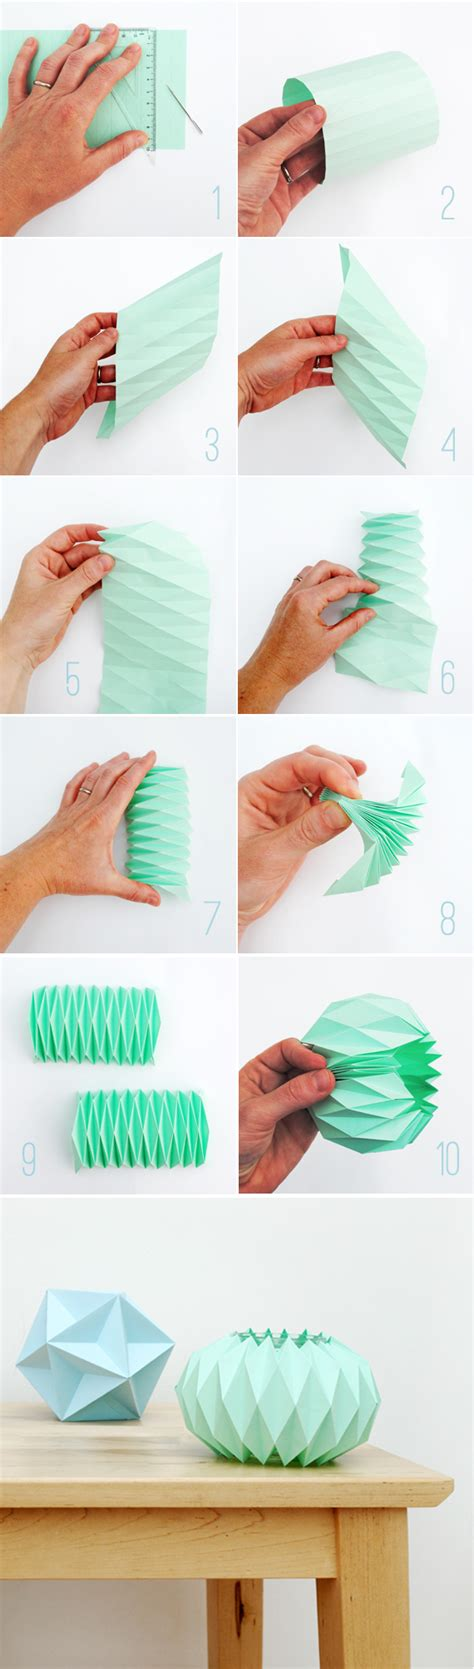 How To Make Paper Folder At Home - diy accordion paper folding candle holder pictures photos